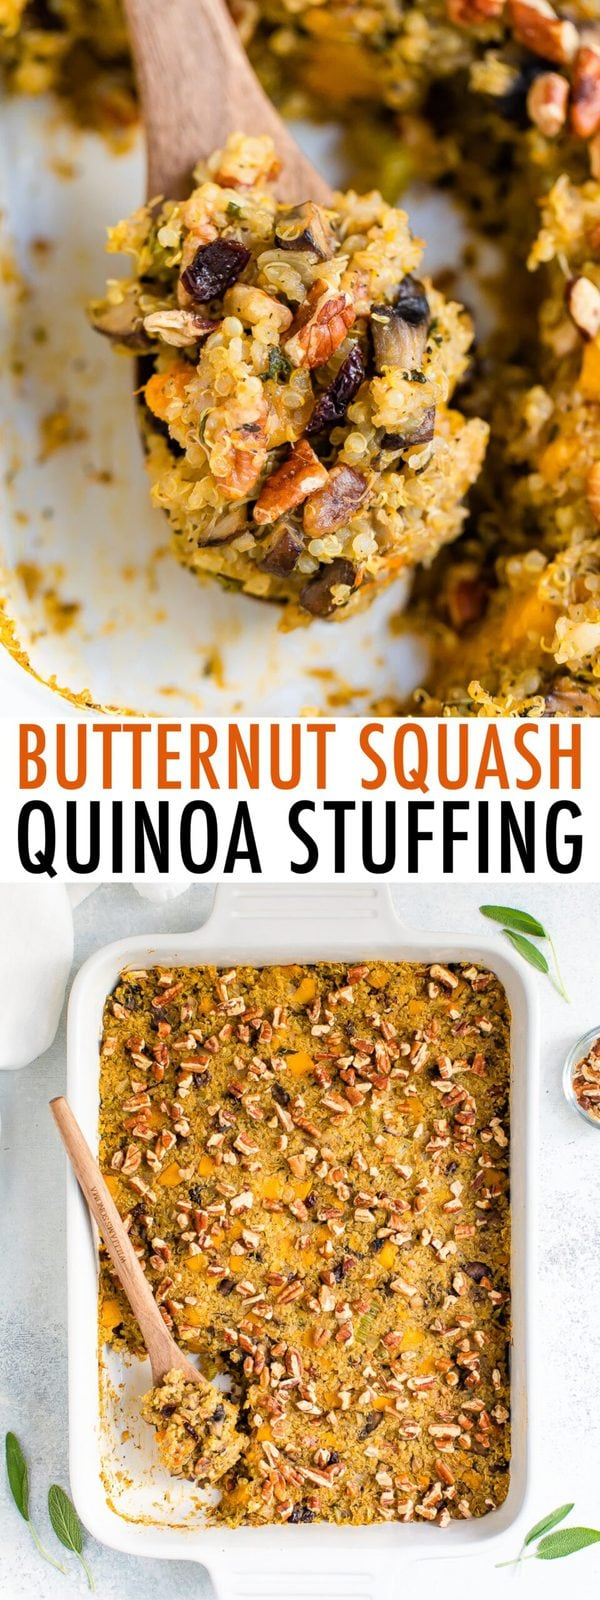 Close up photo of a wooden spoon scooping up stiffening quinoa.  The second photo shows a casserole dish with the butternut squash quinoa stuffing topped with pecans.